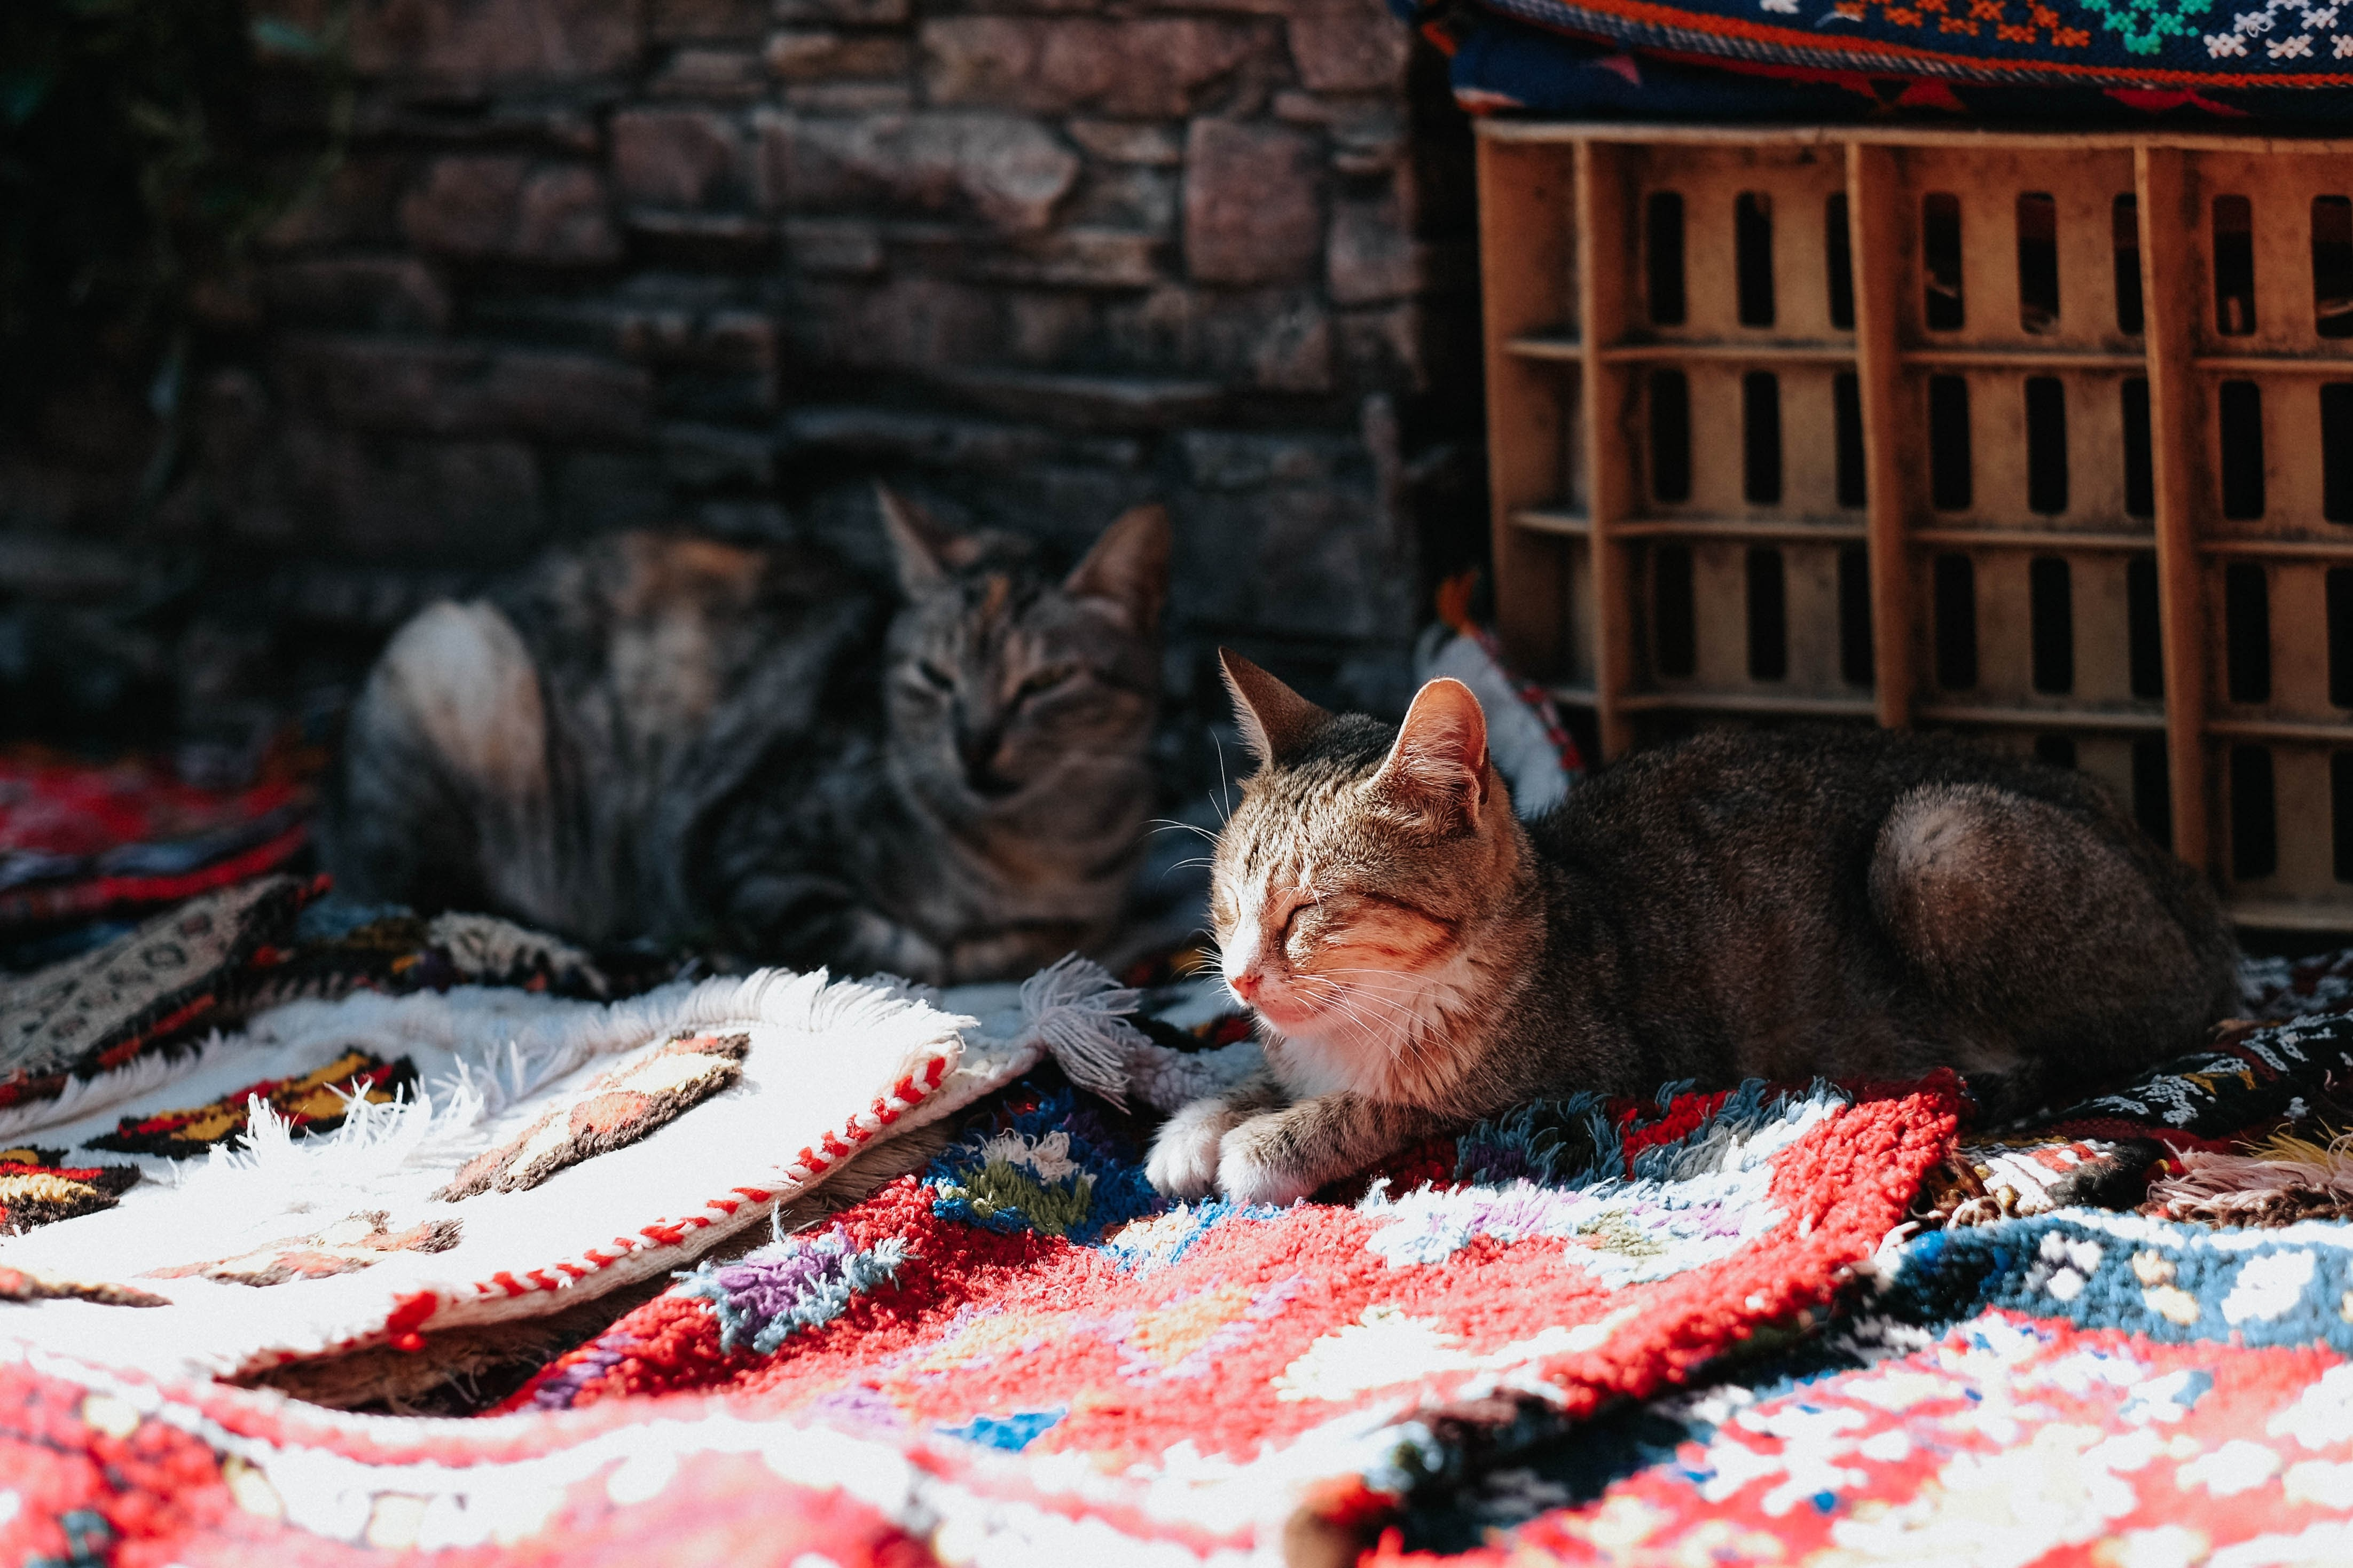 two brown cats crouching on textile